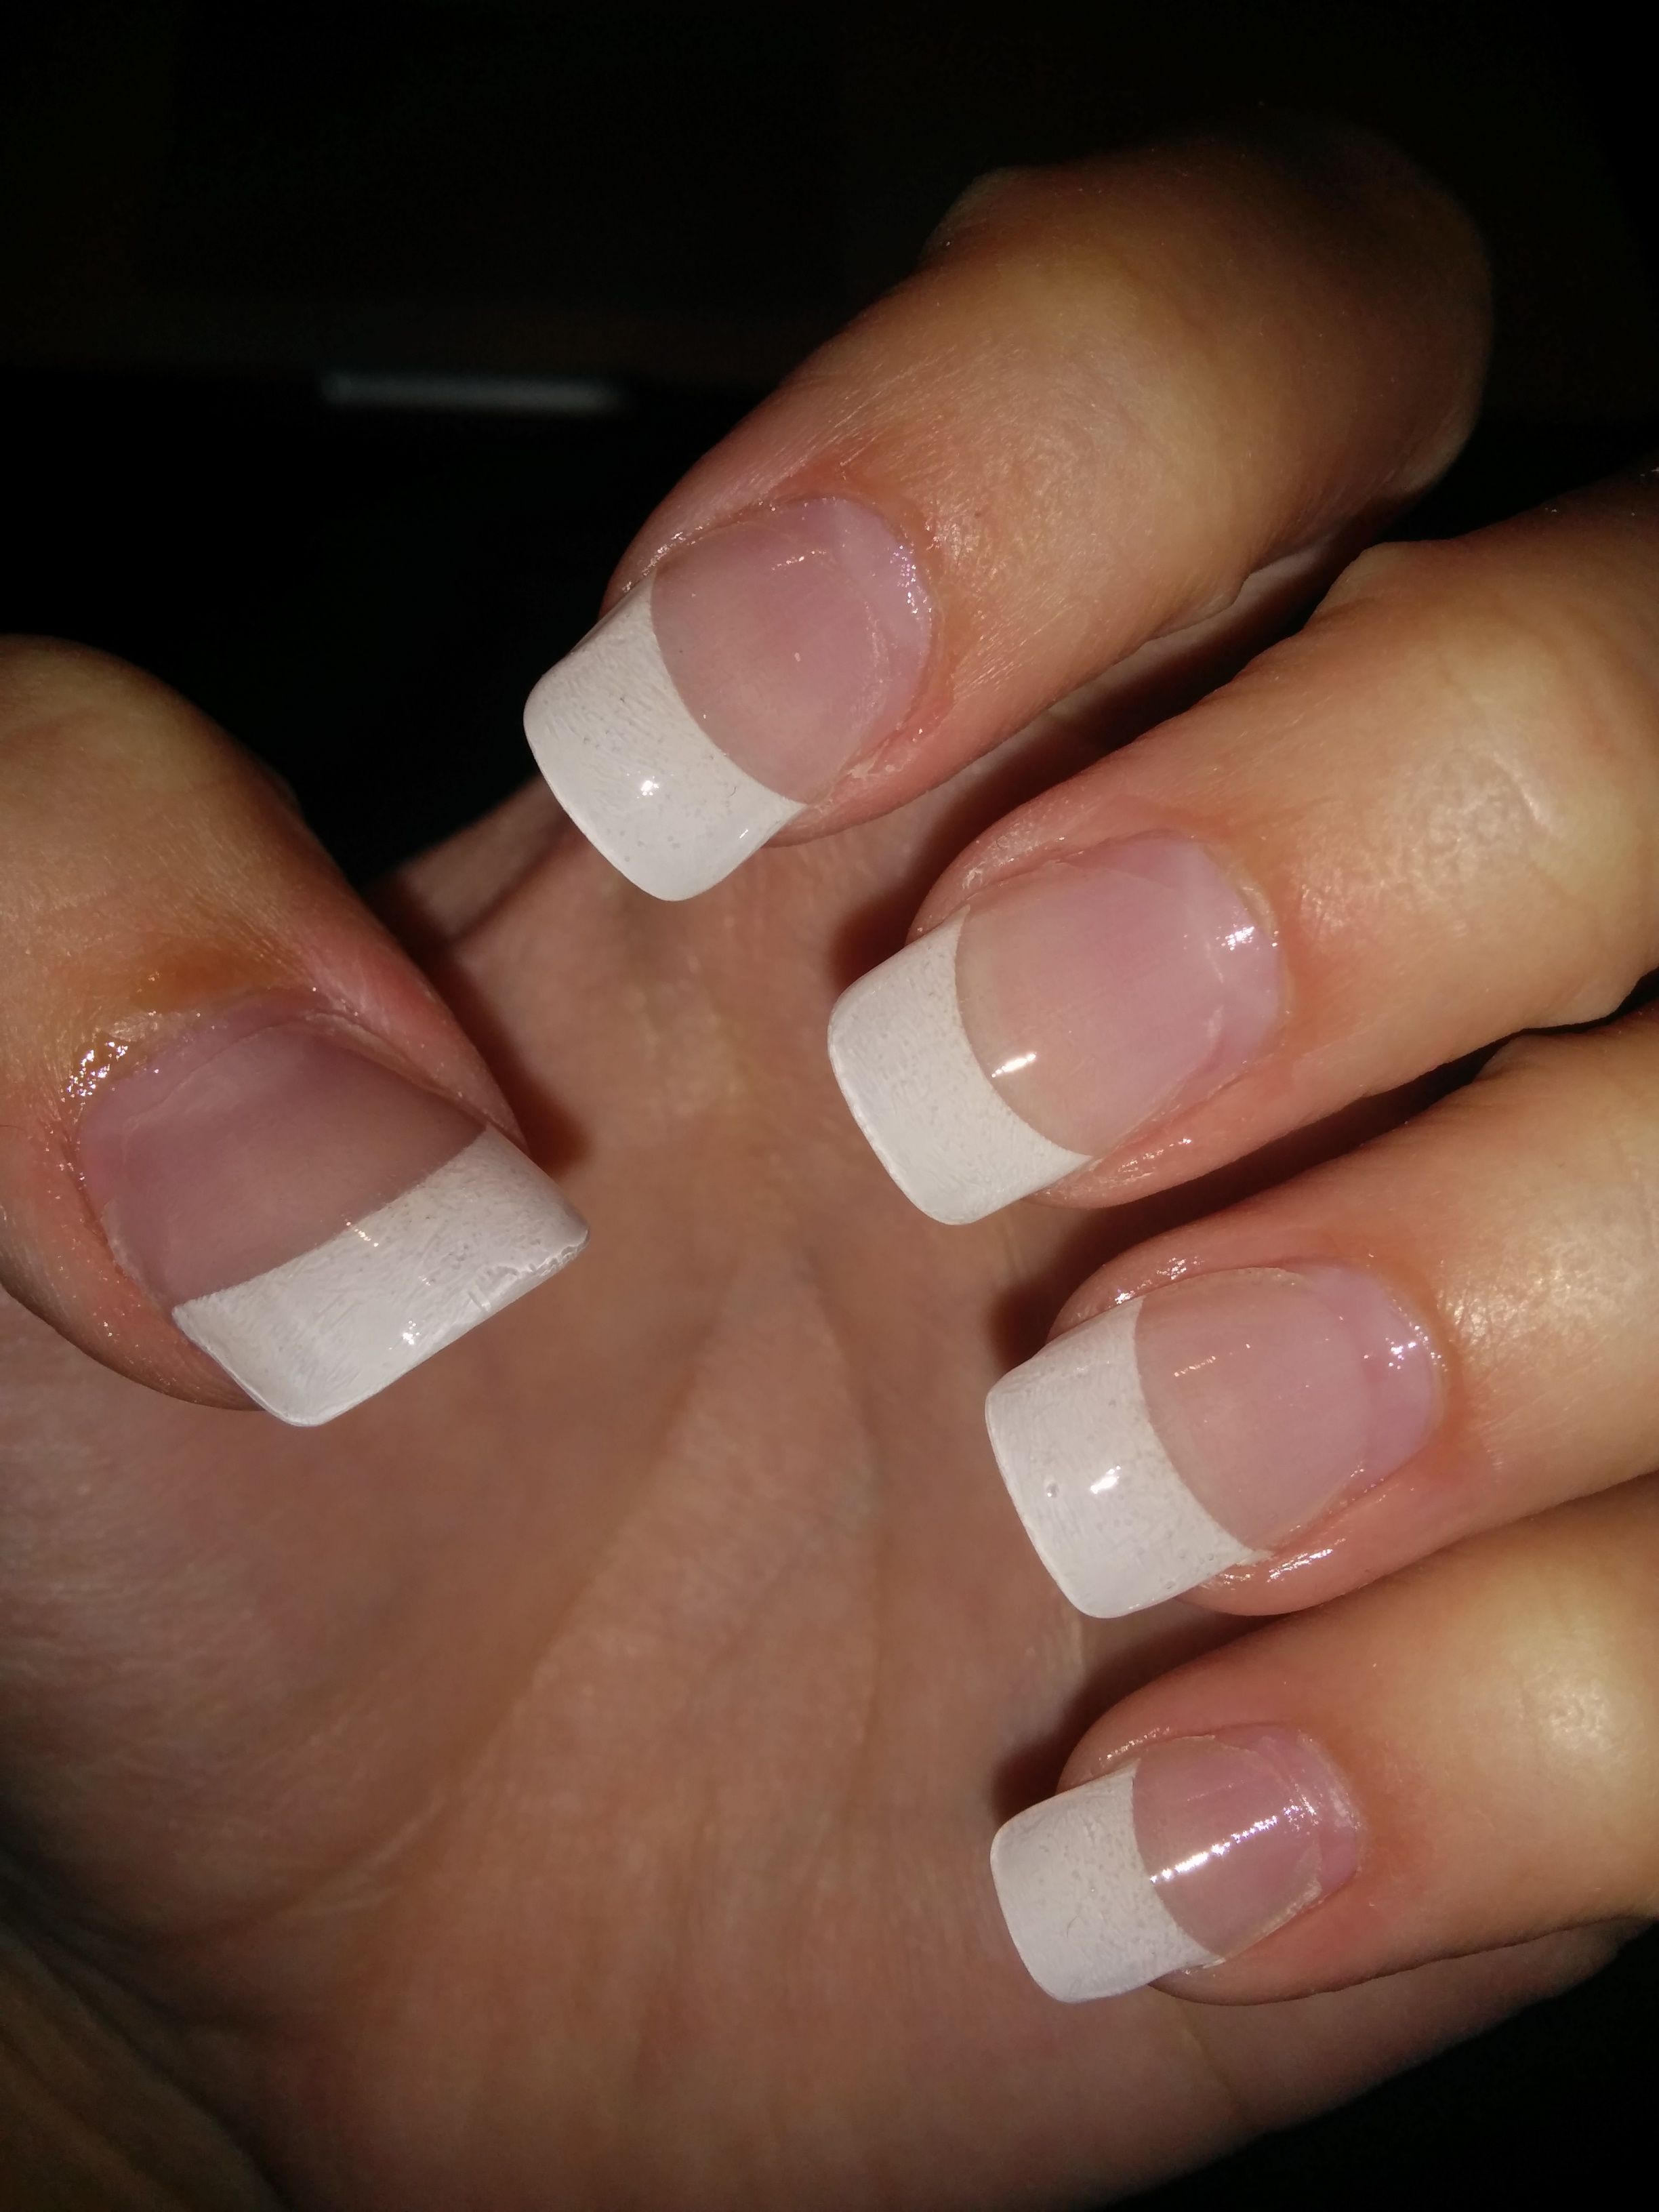 6 easy steps to make your acrylic nails last longer